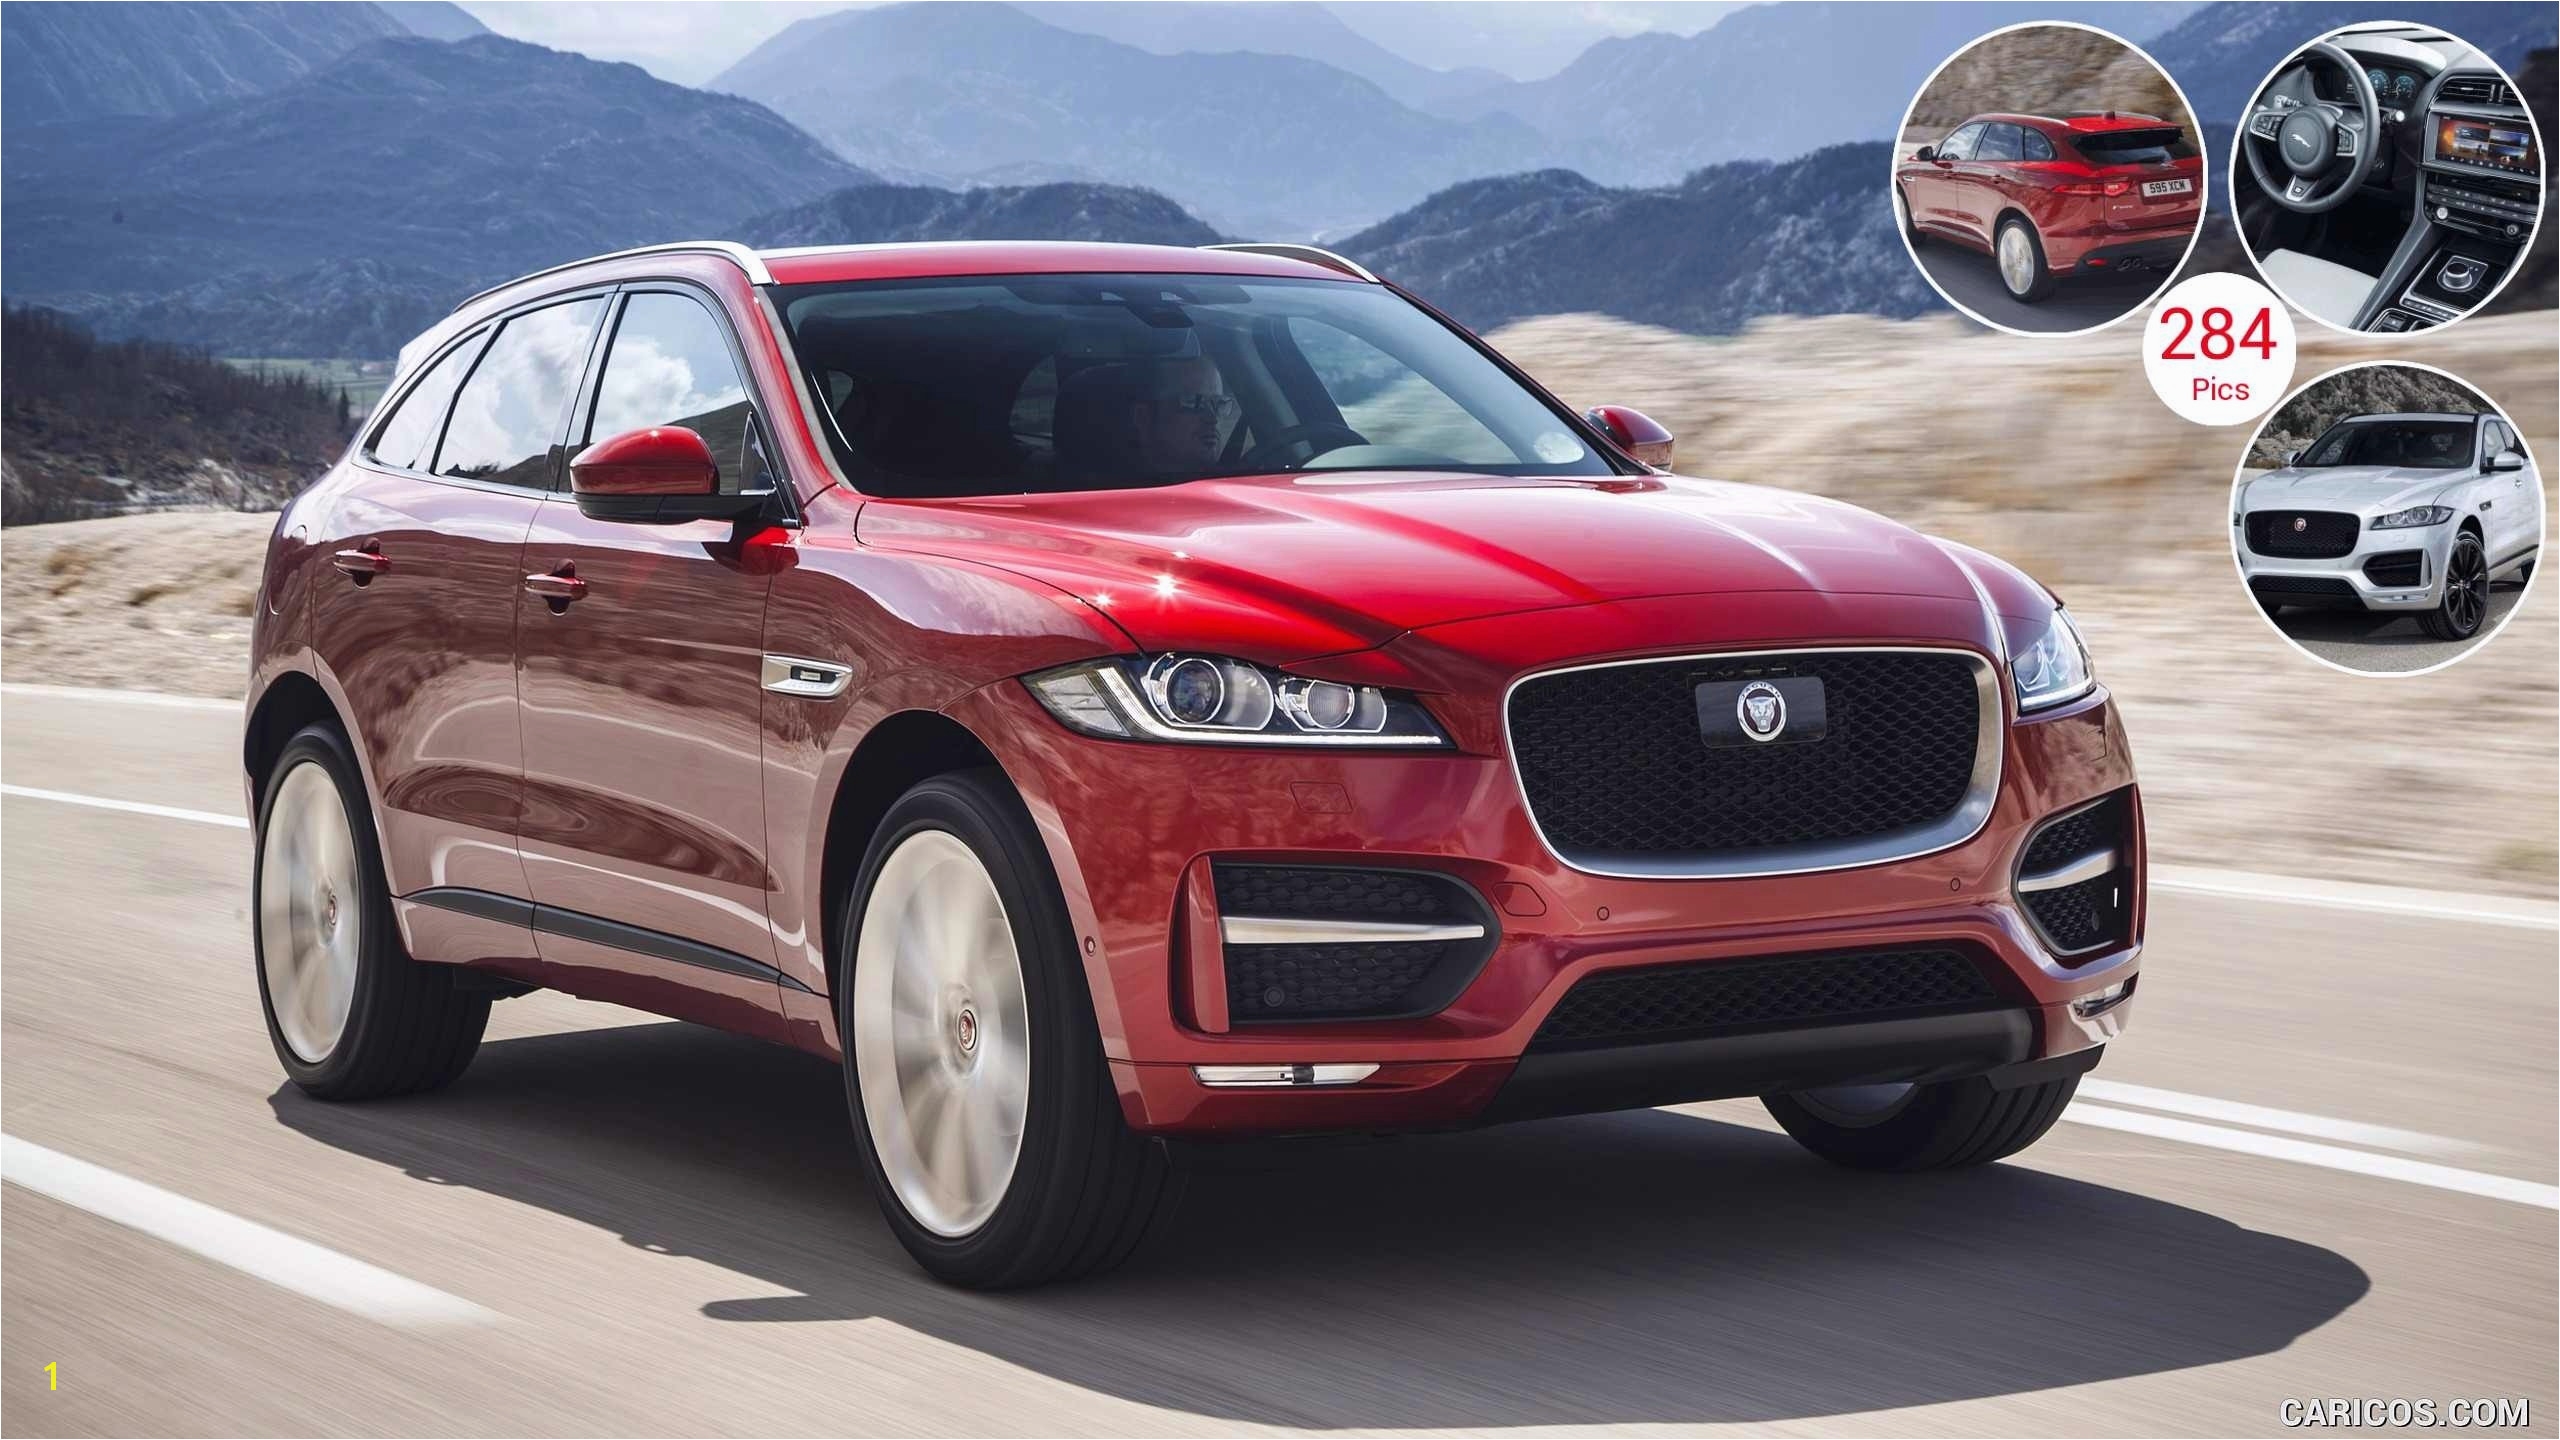 Sports Printable Coloring Pages 2017 Coloring Pages Inspirational 2017 Jaguar F Pace 2 0d R Sport